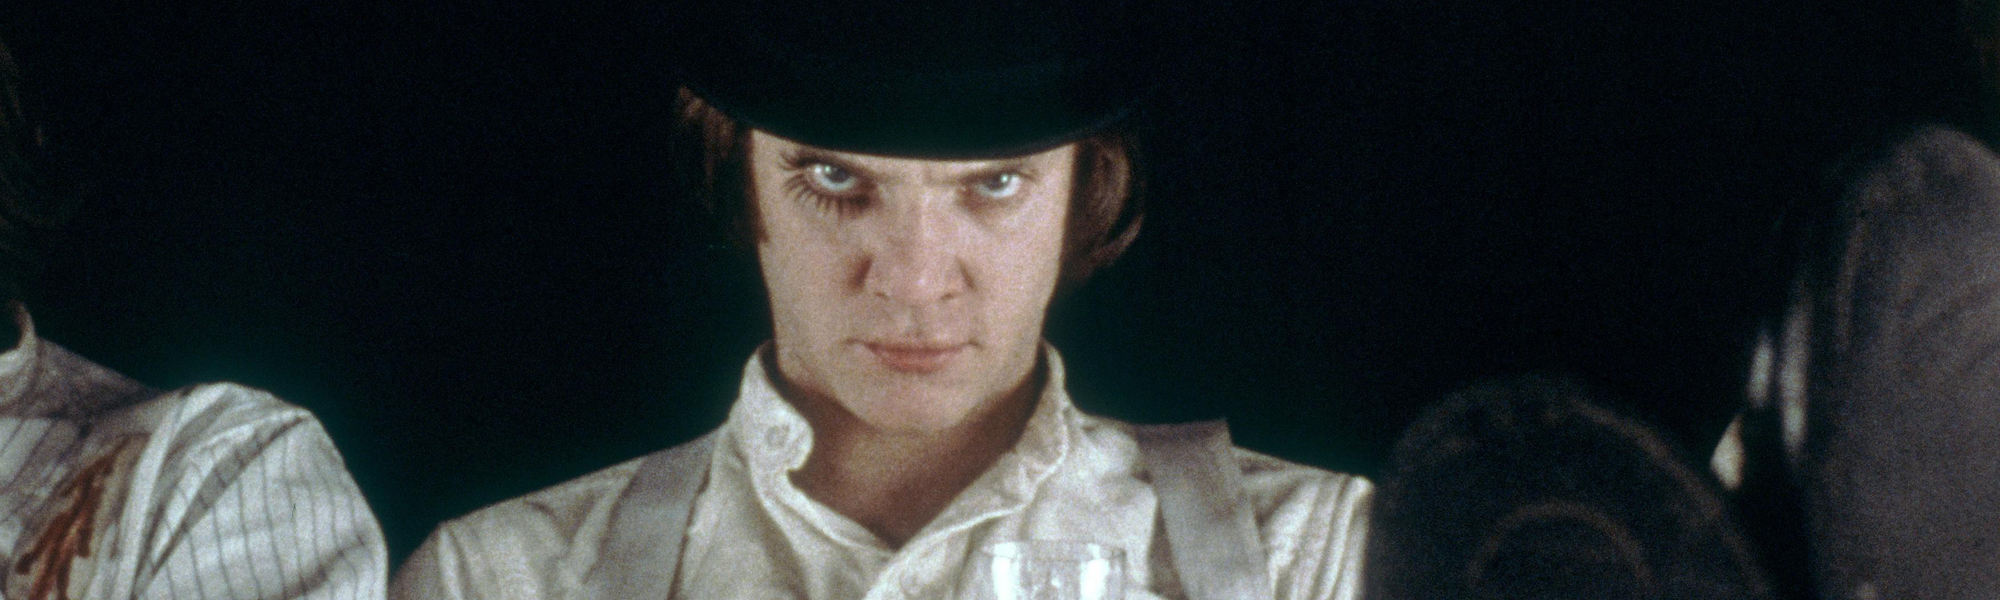 UHArts, A Clockwork orange, Kubrick, Stanley Kubrick, Elstree Originals